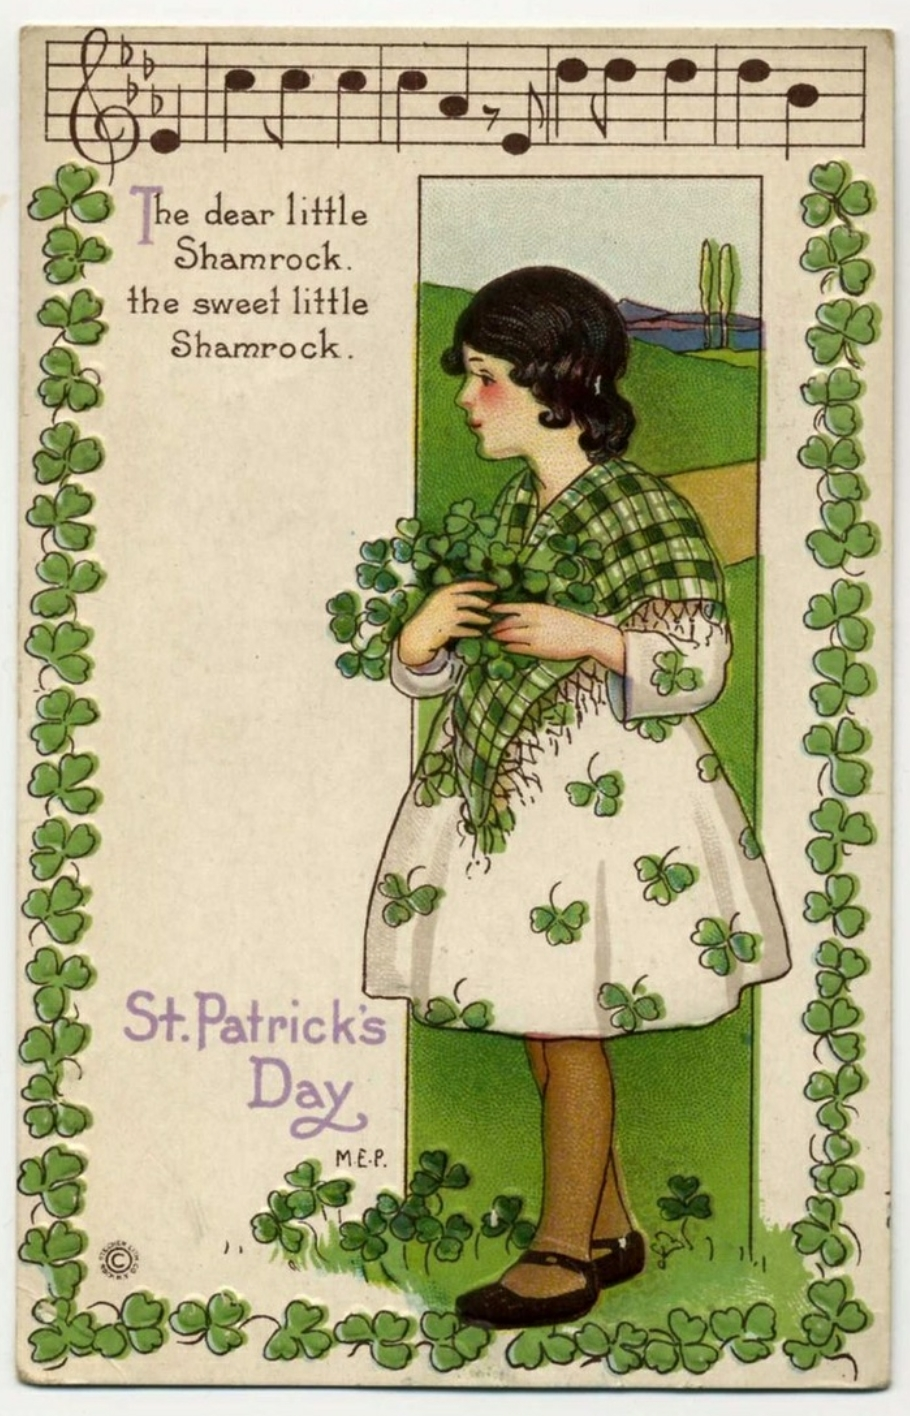 Vintage Saint Patrick's Day post card music notes